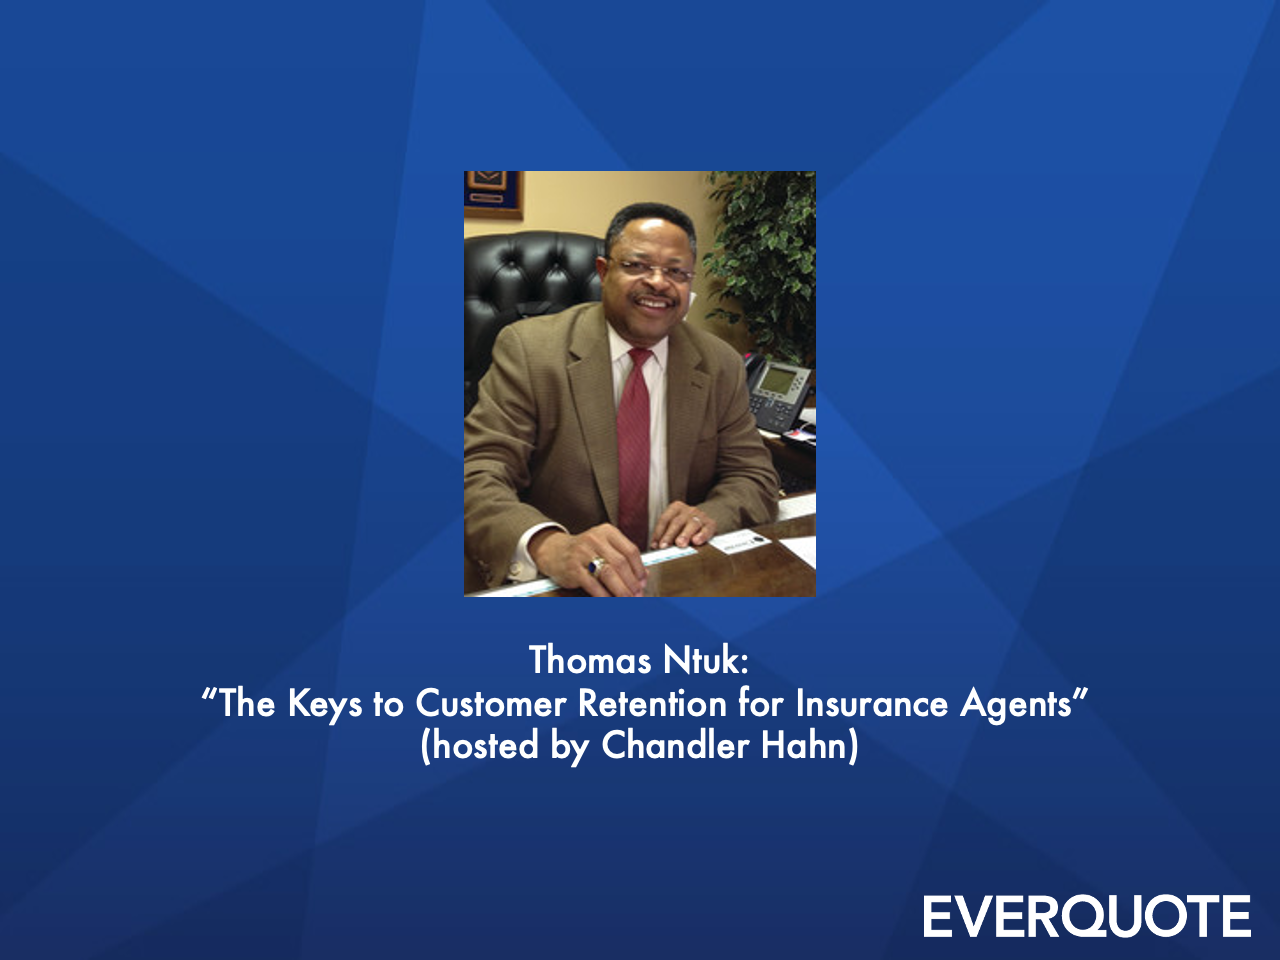 The Keys to Customer Retention for Insurance Agents with Thomas Ntuk